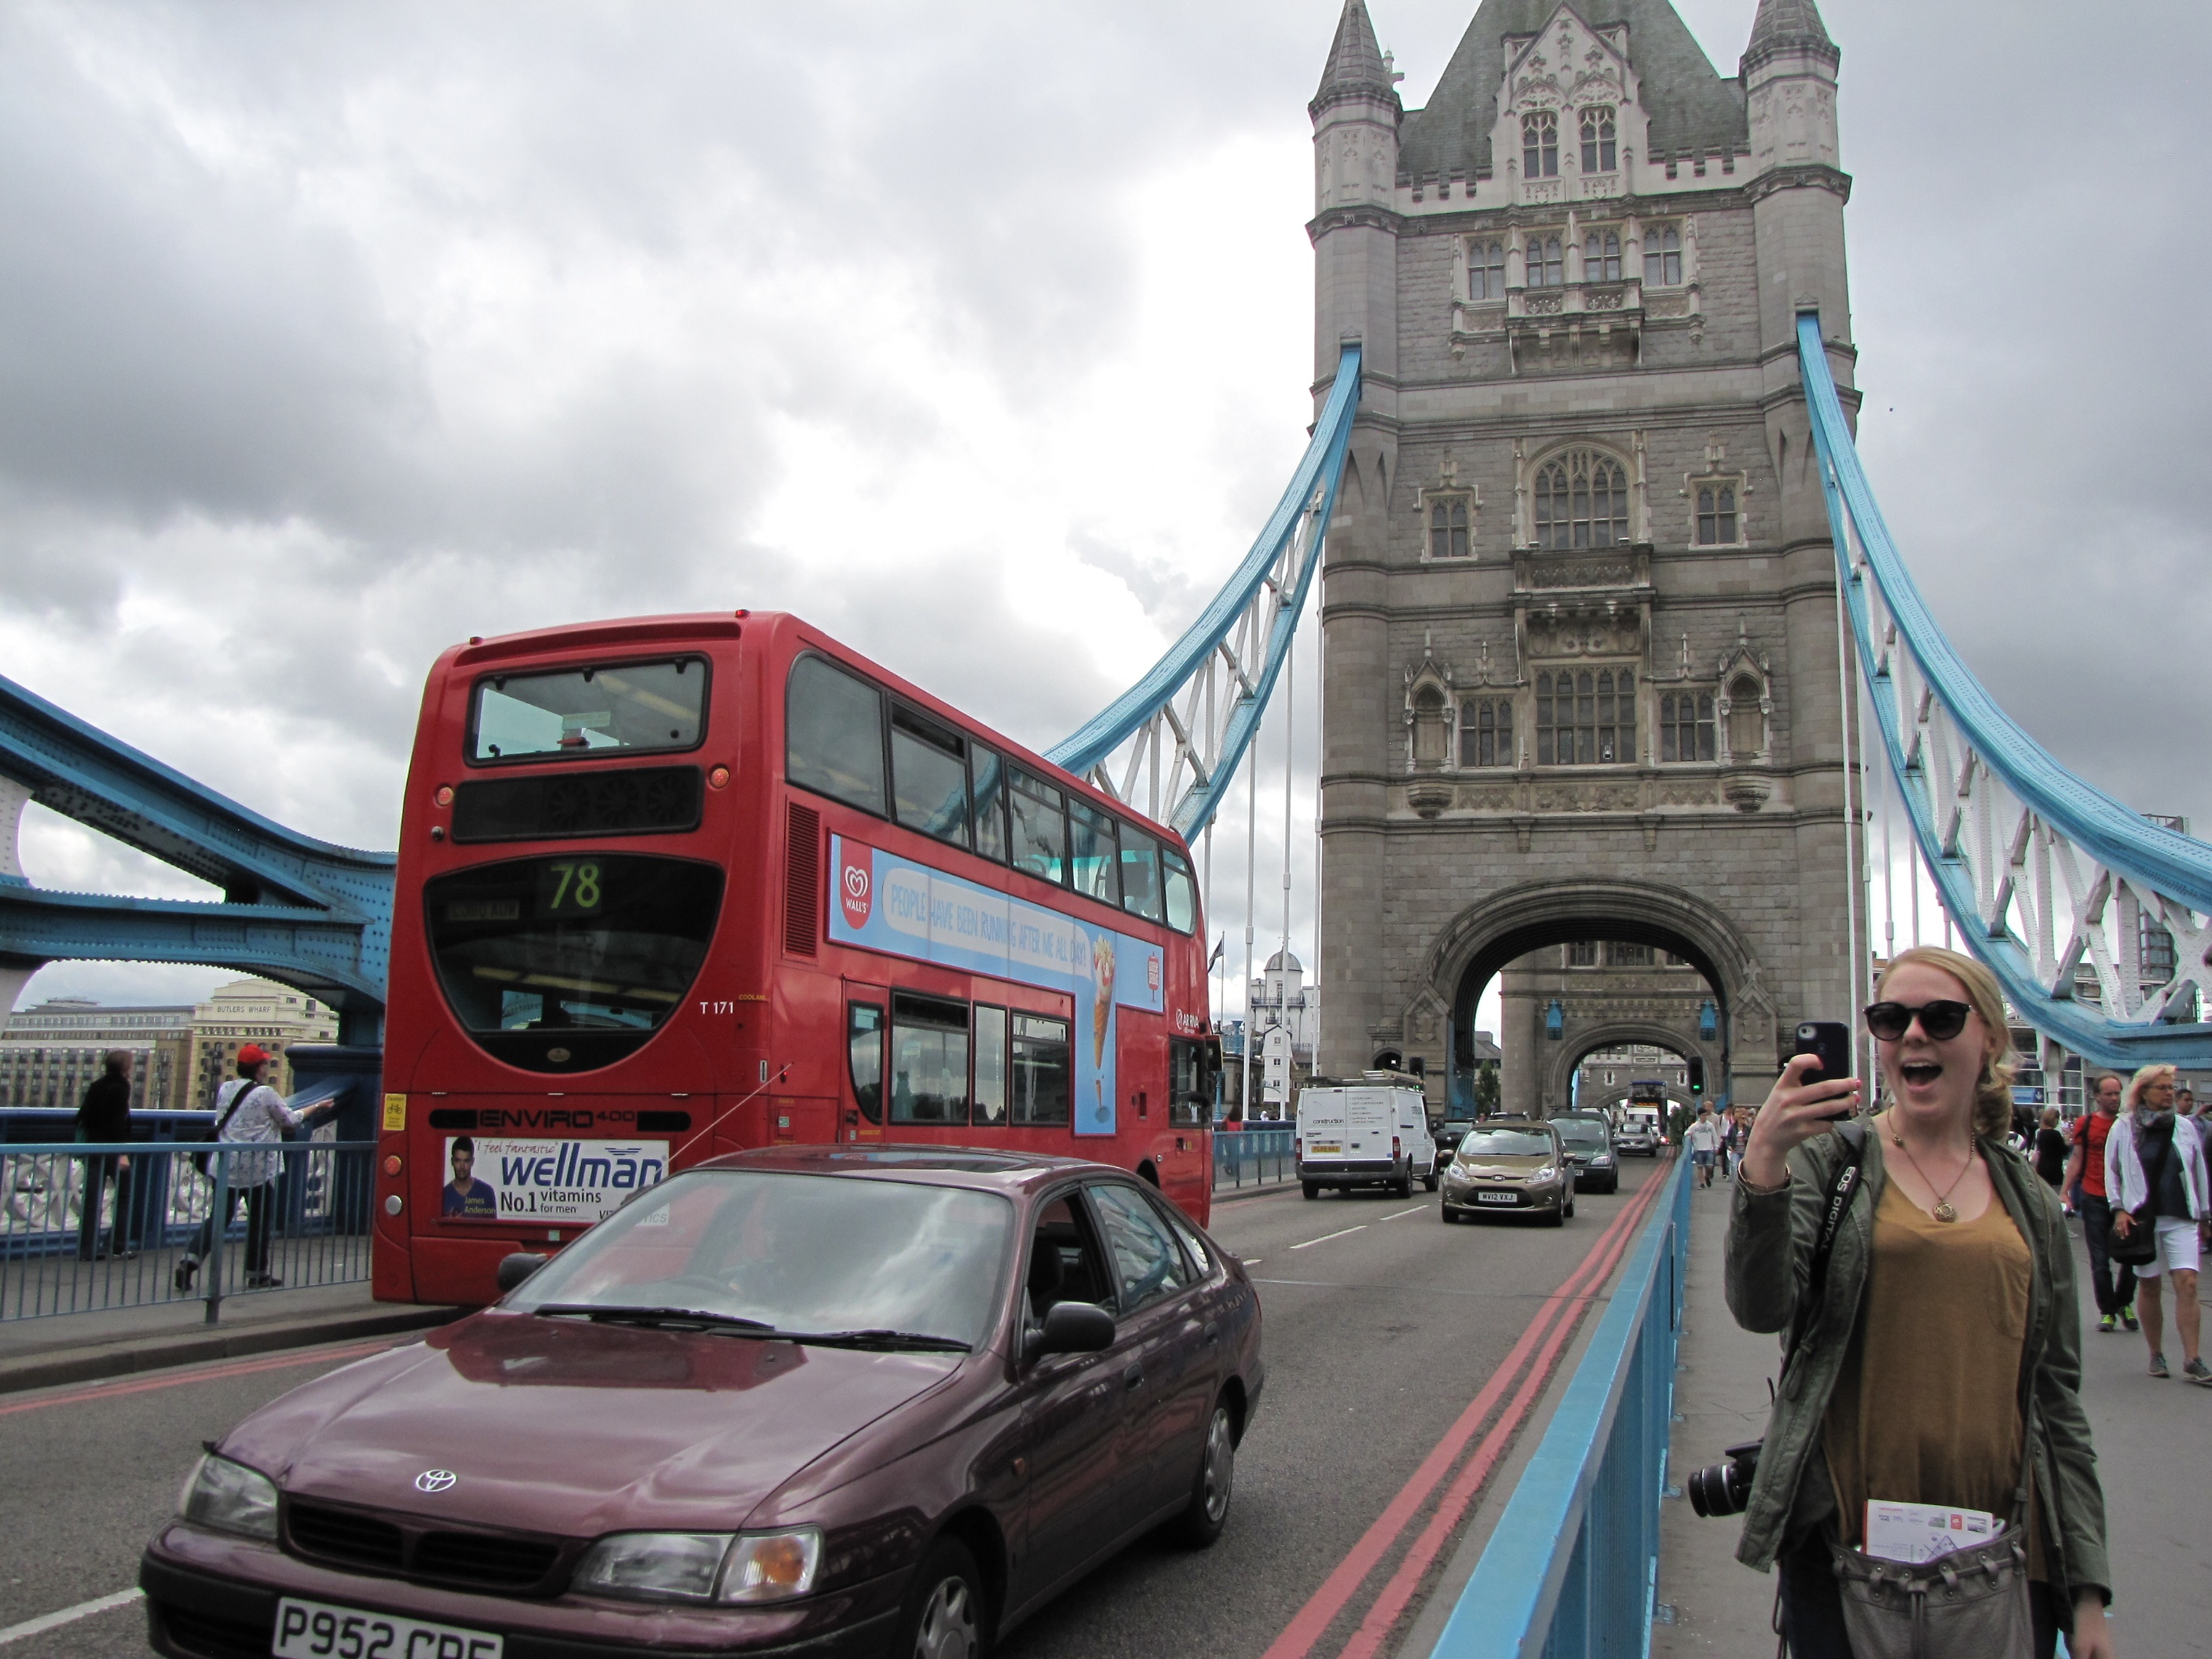 CAPAStudyAbroad_London_Summer2015_From_Sawyer_Coffey_-_Tower_Bridge